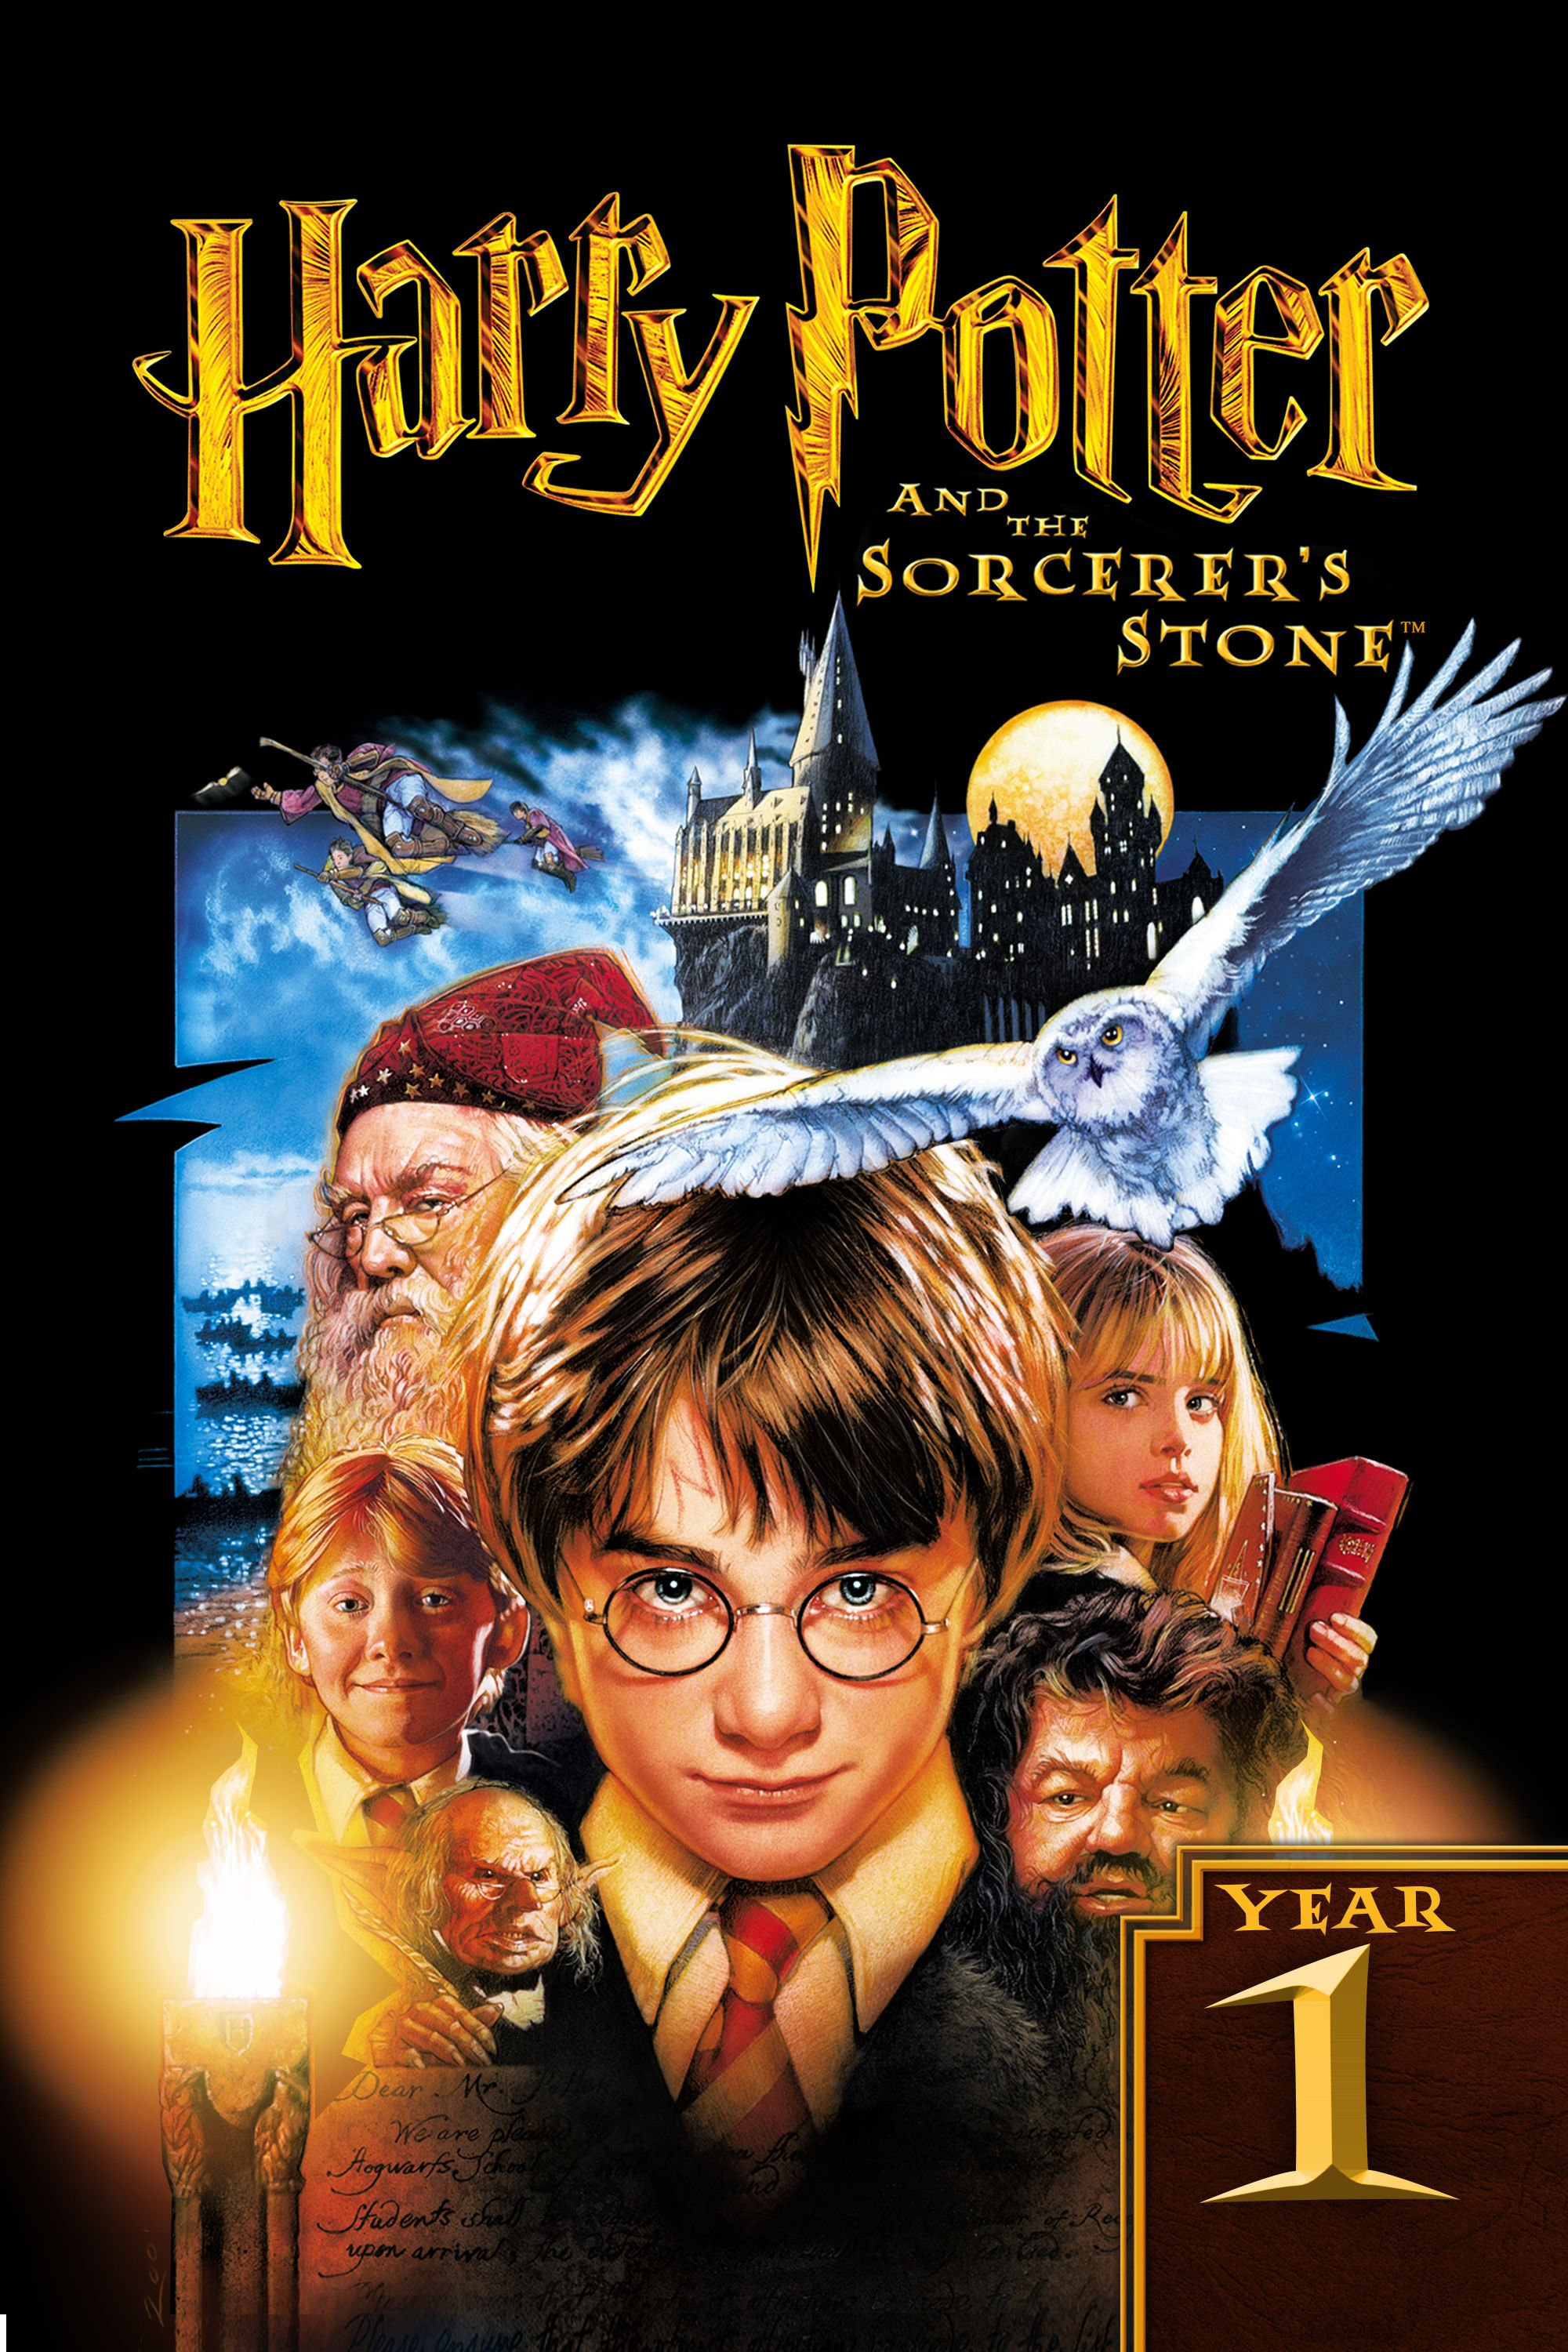 harry-potter-and-the-sorcerers-stone-filming-locations-dvd-poster